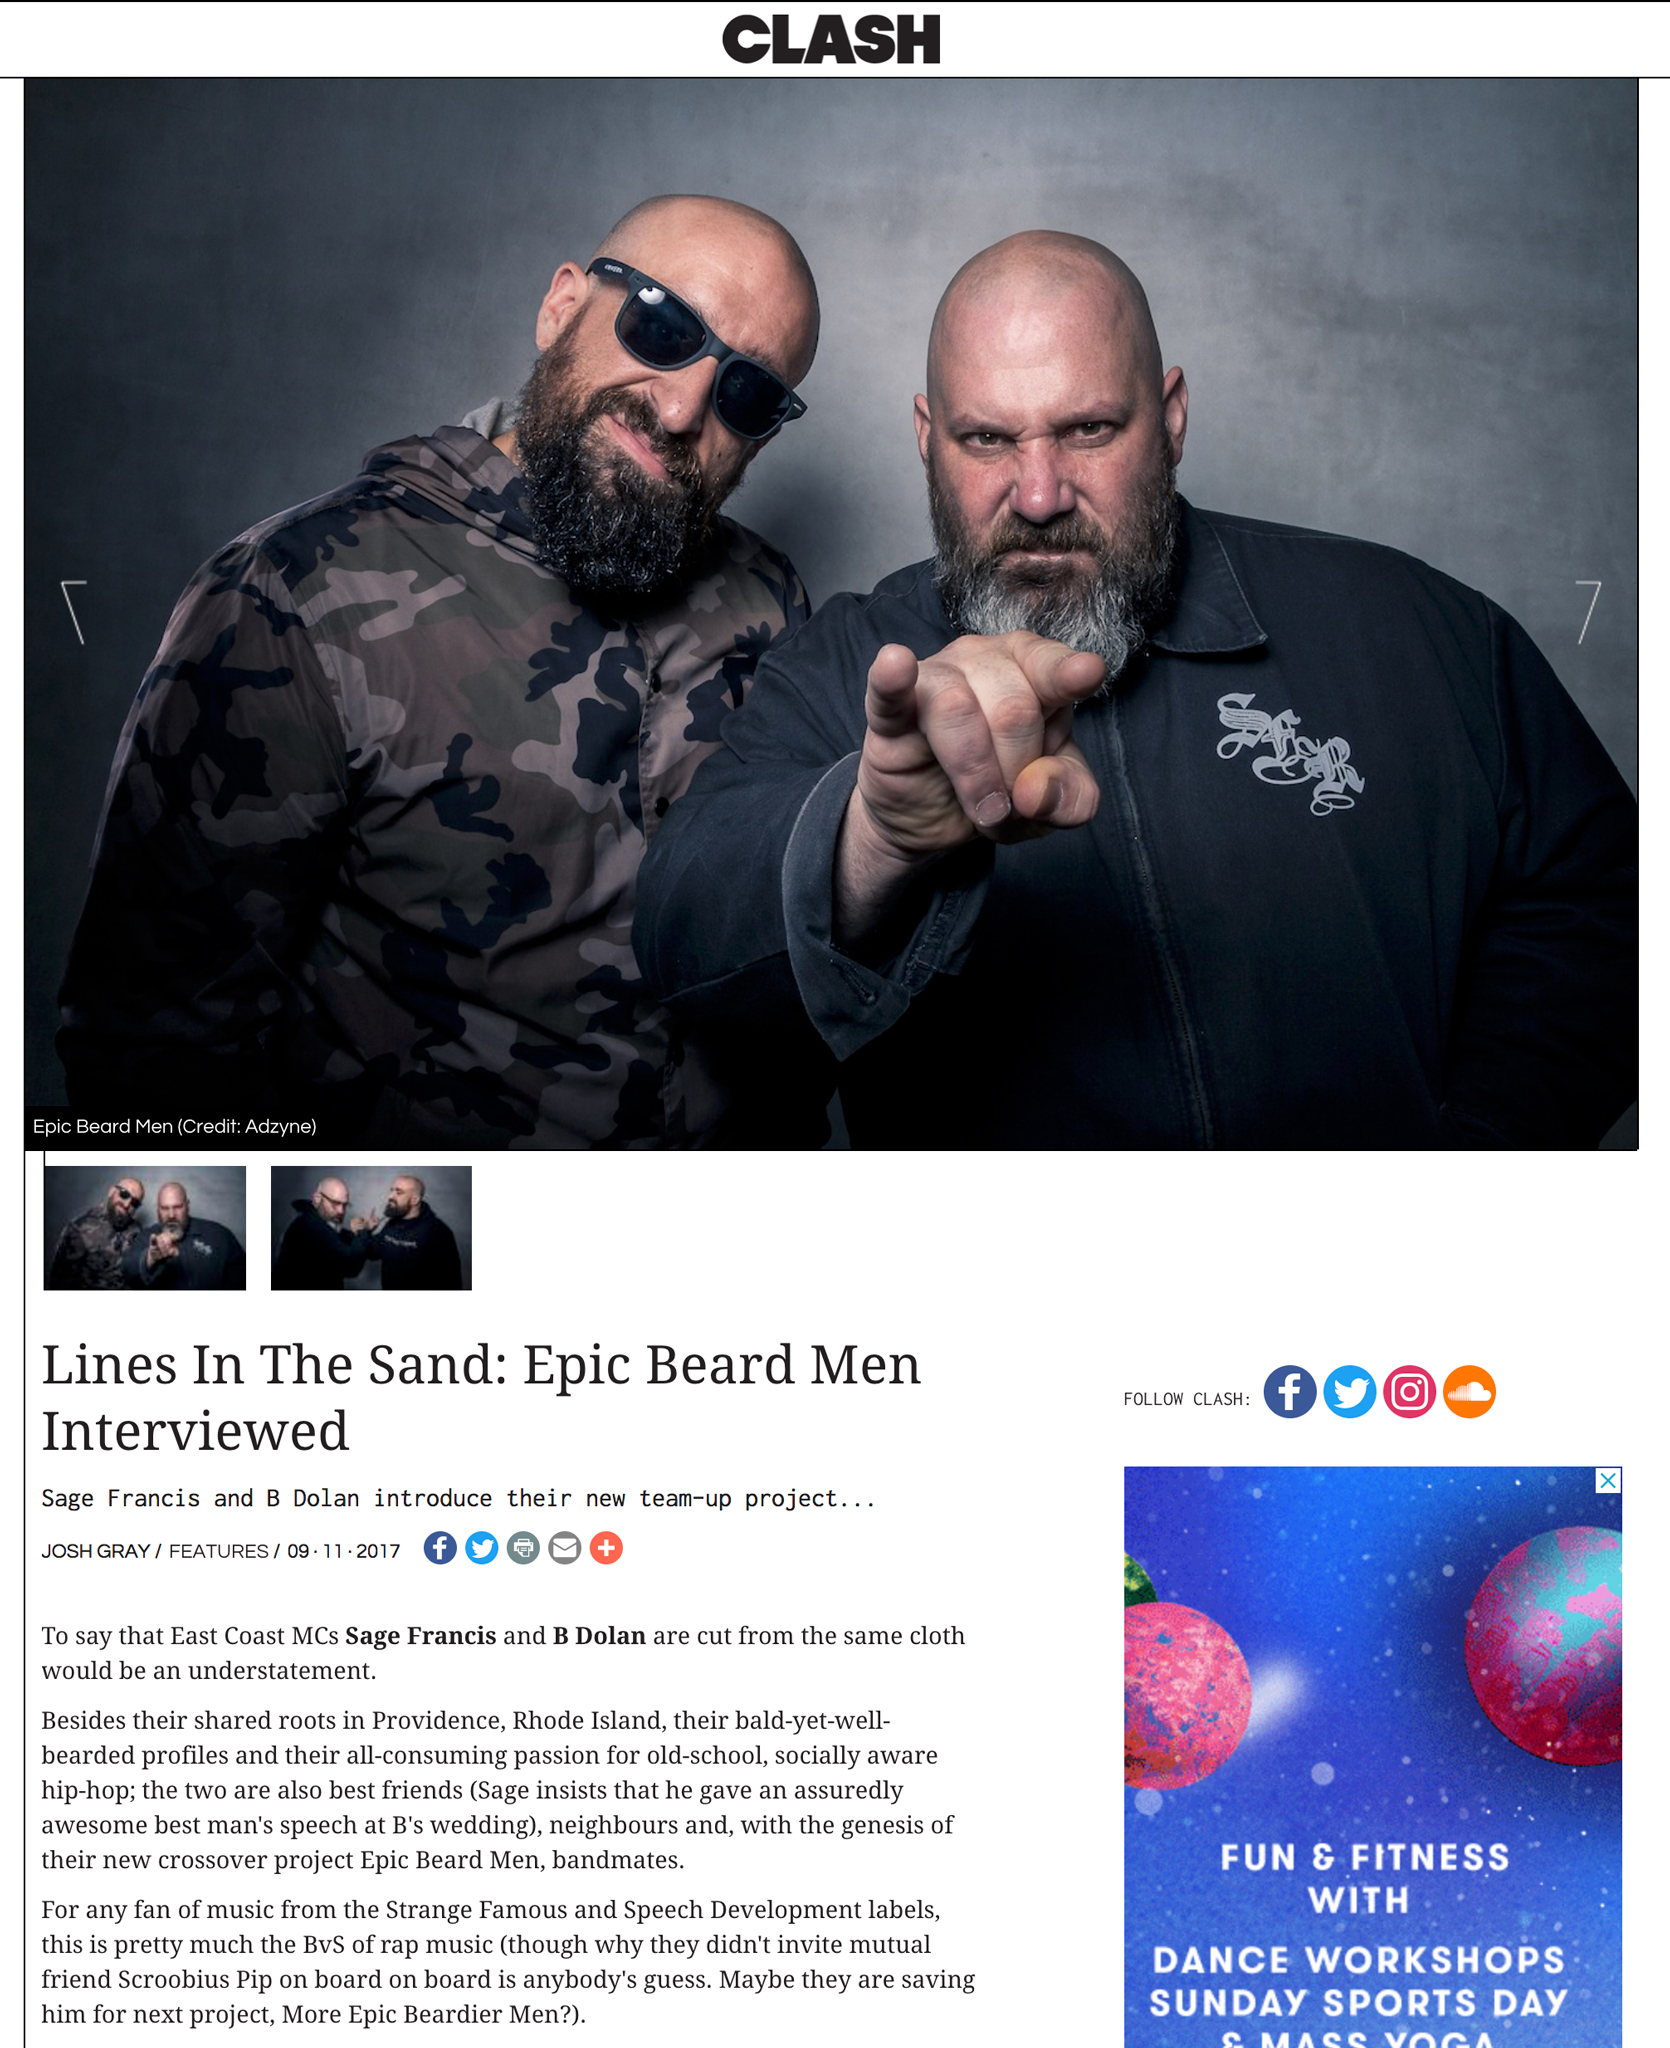 Epipc Beard Men Clash article.jpg